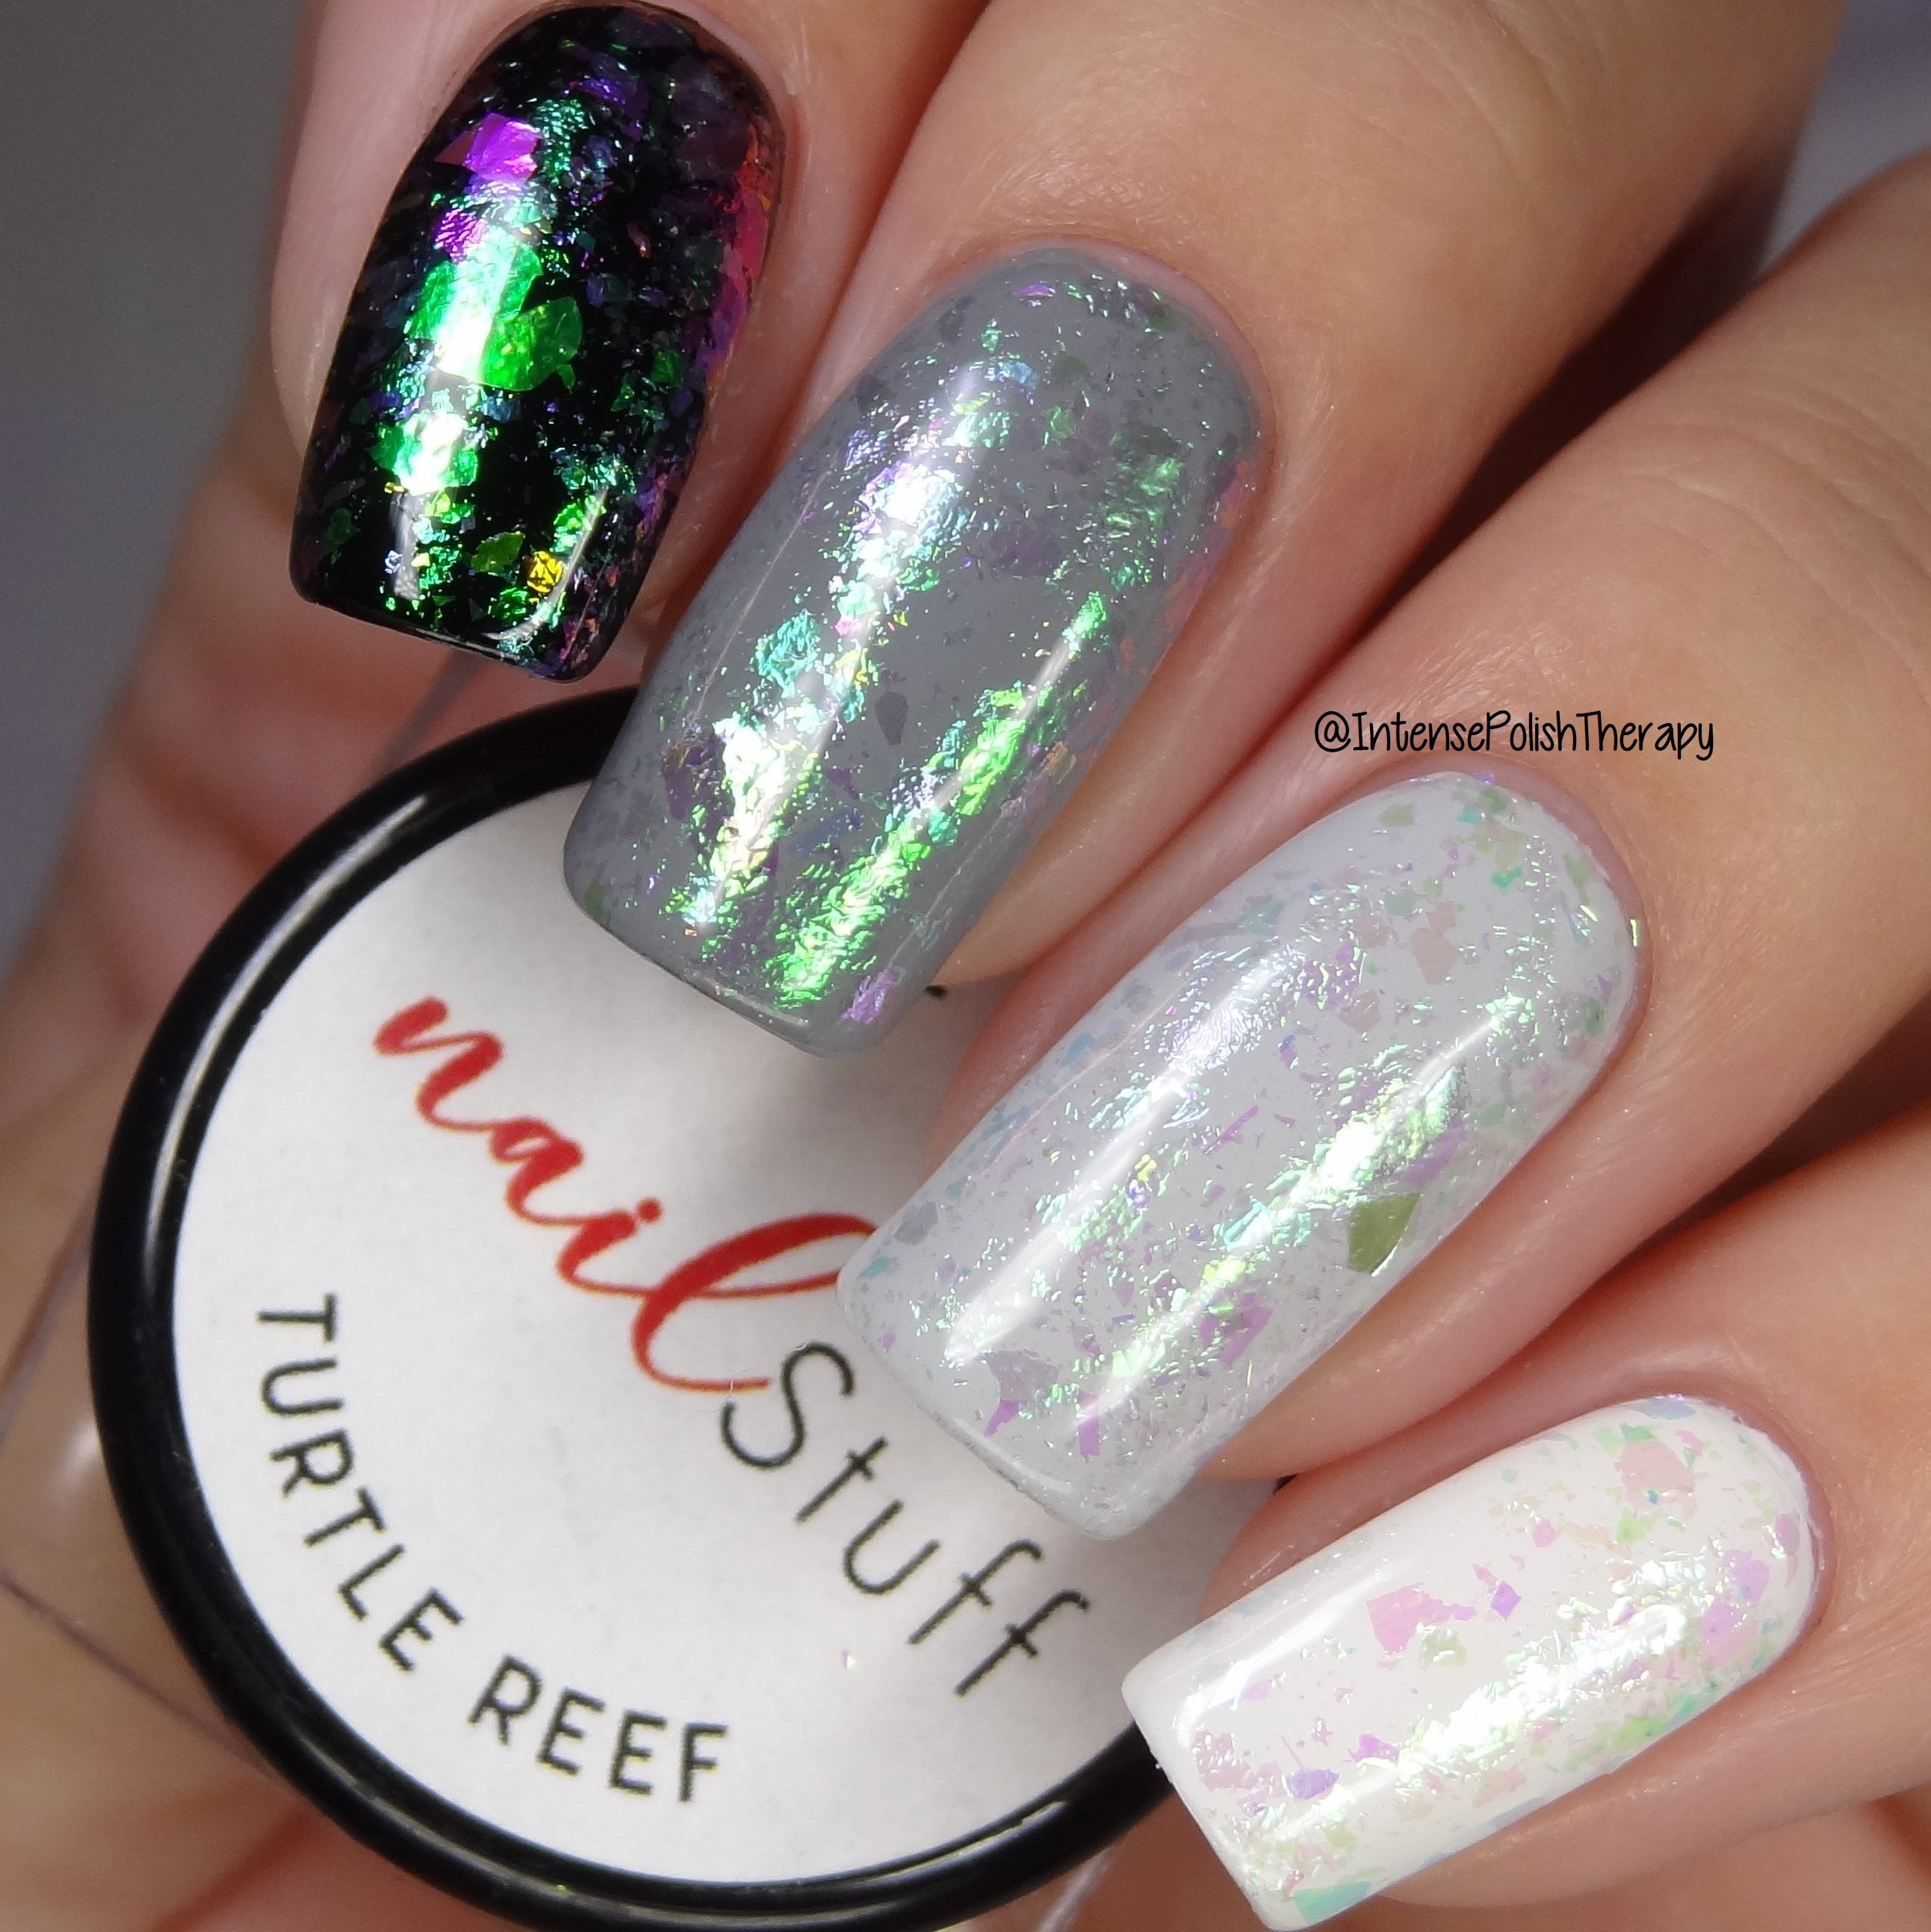 Turtle Reef - Iridescent Nail Flakes